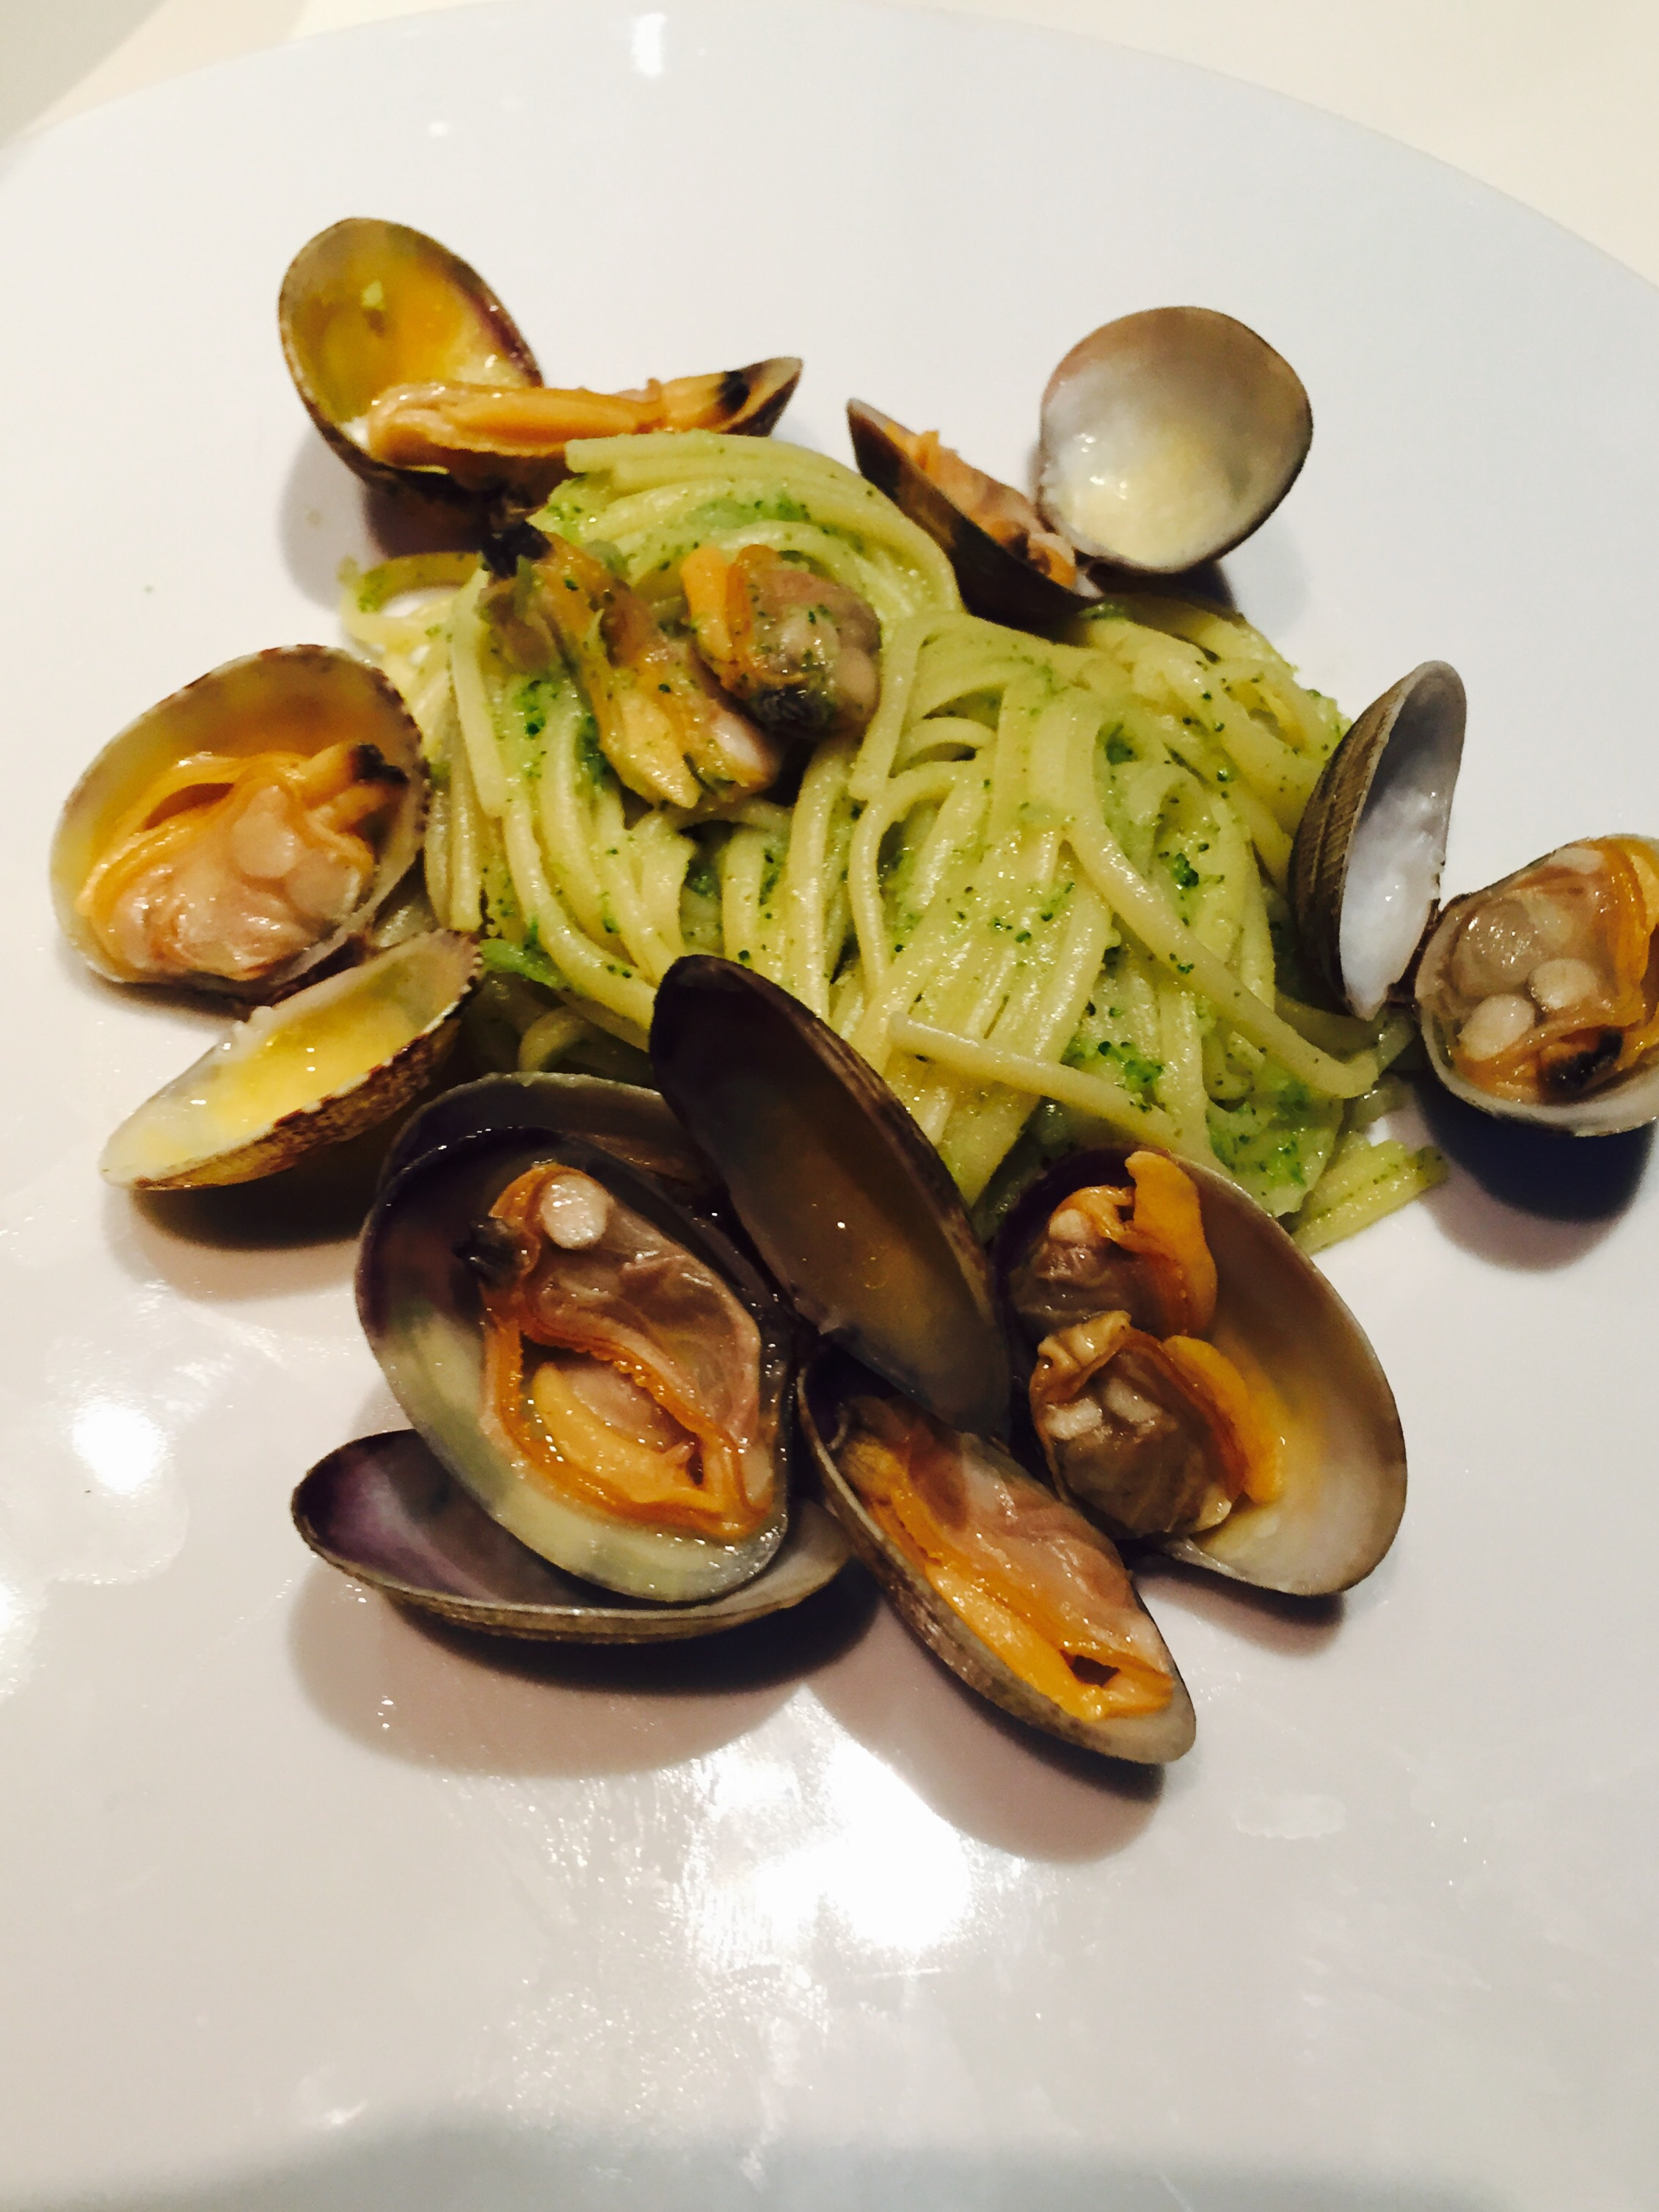 Spaghetti con crema di broccoli e vongole – Broccoli cream and clams ...